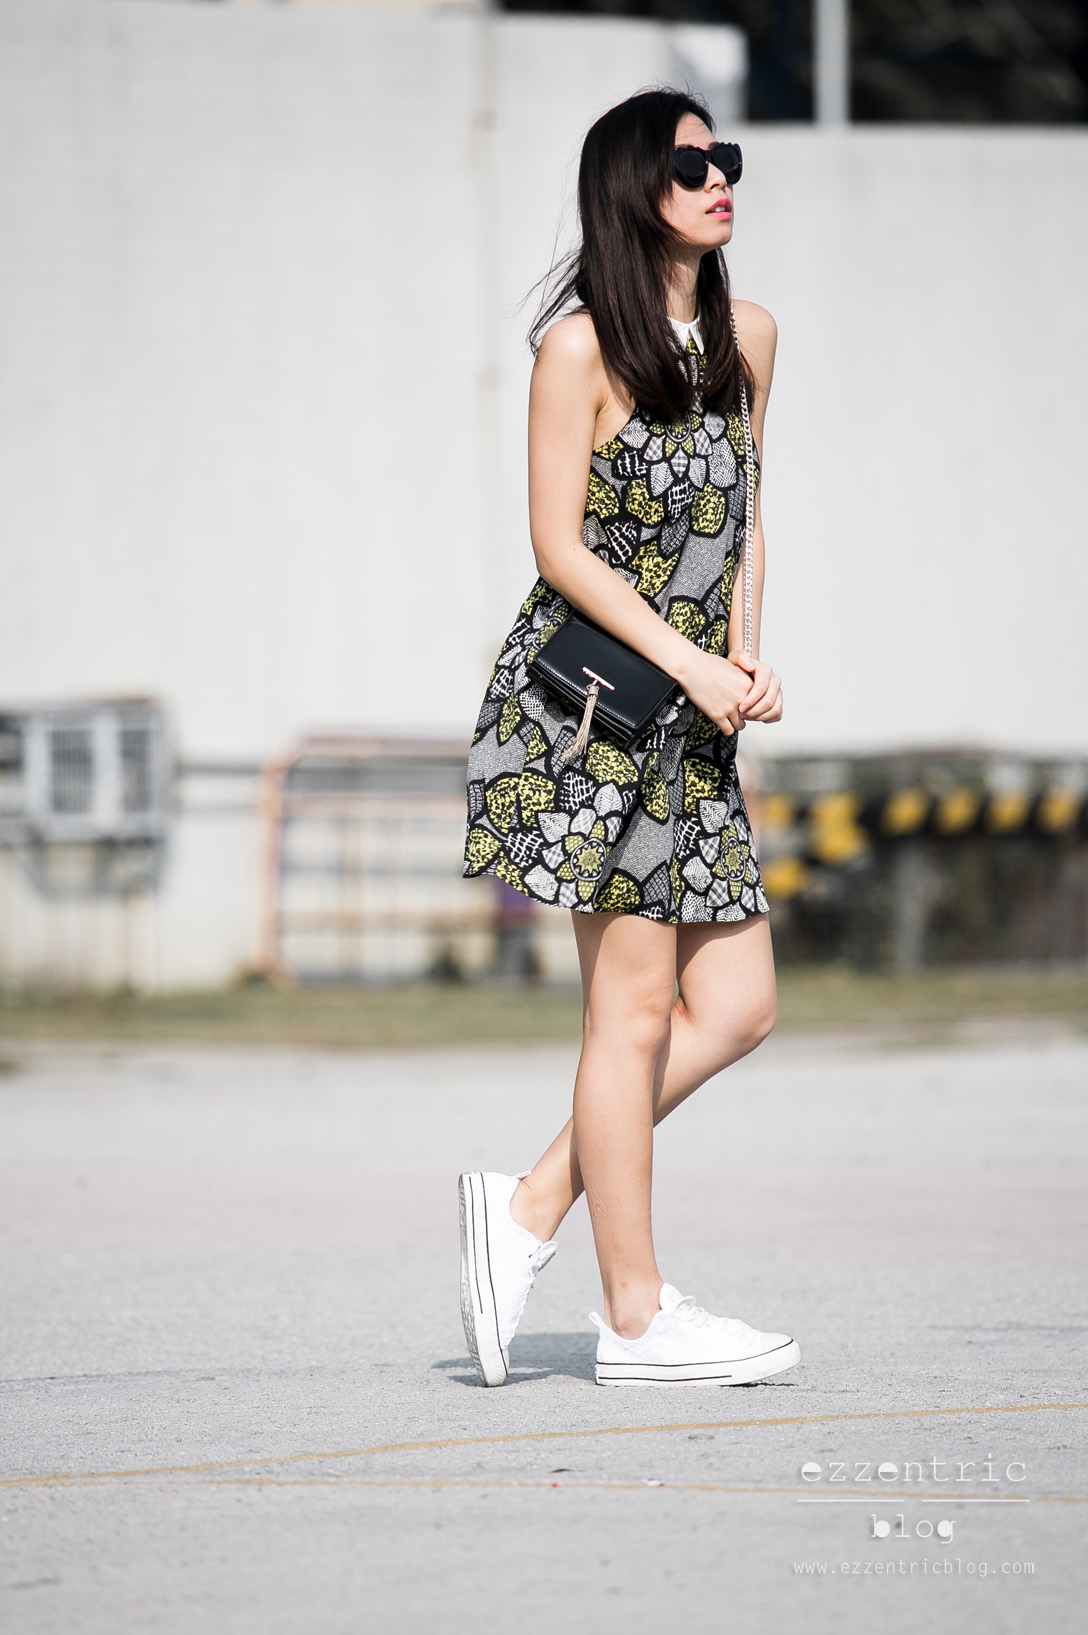 River Island Dress, Woven Converse Sneakers Outfit 04